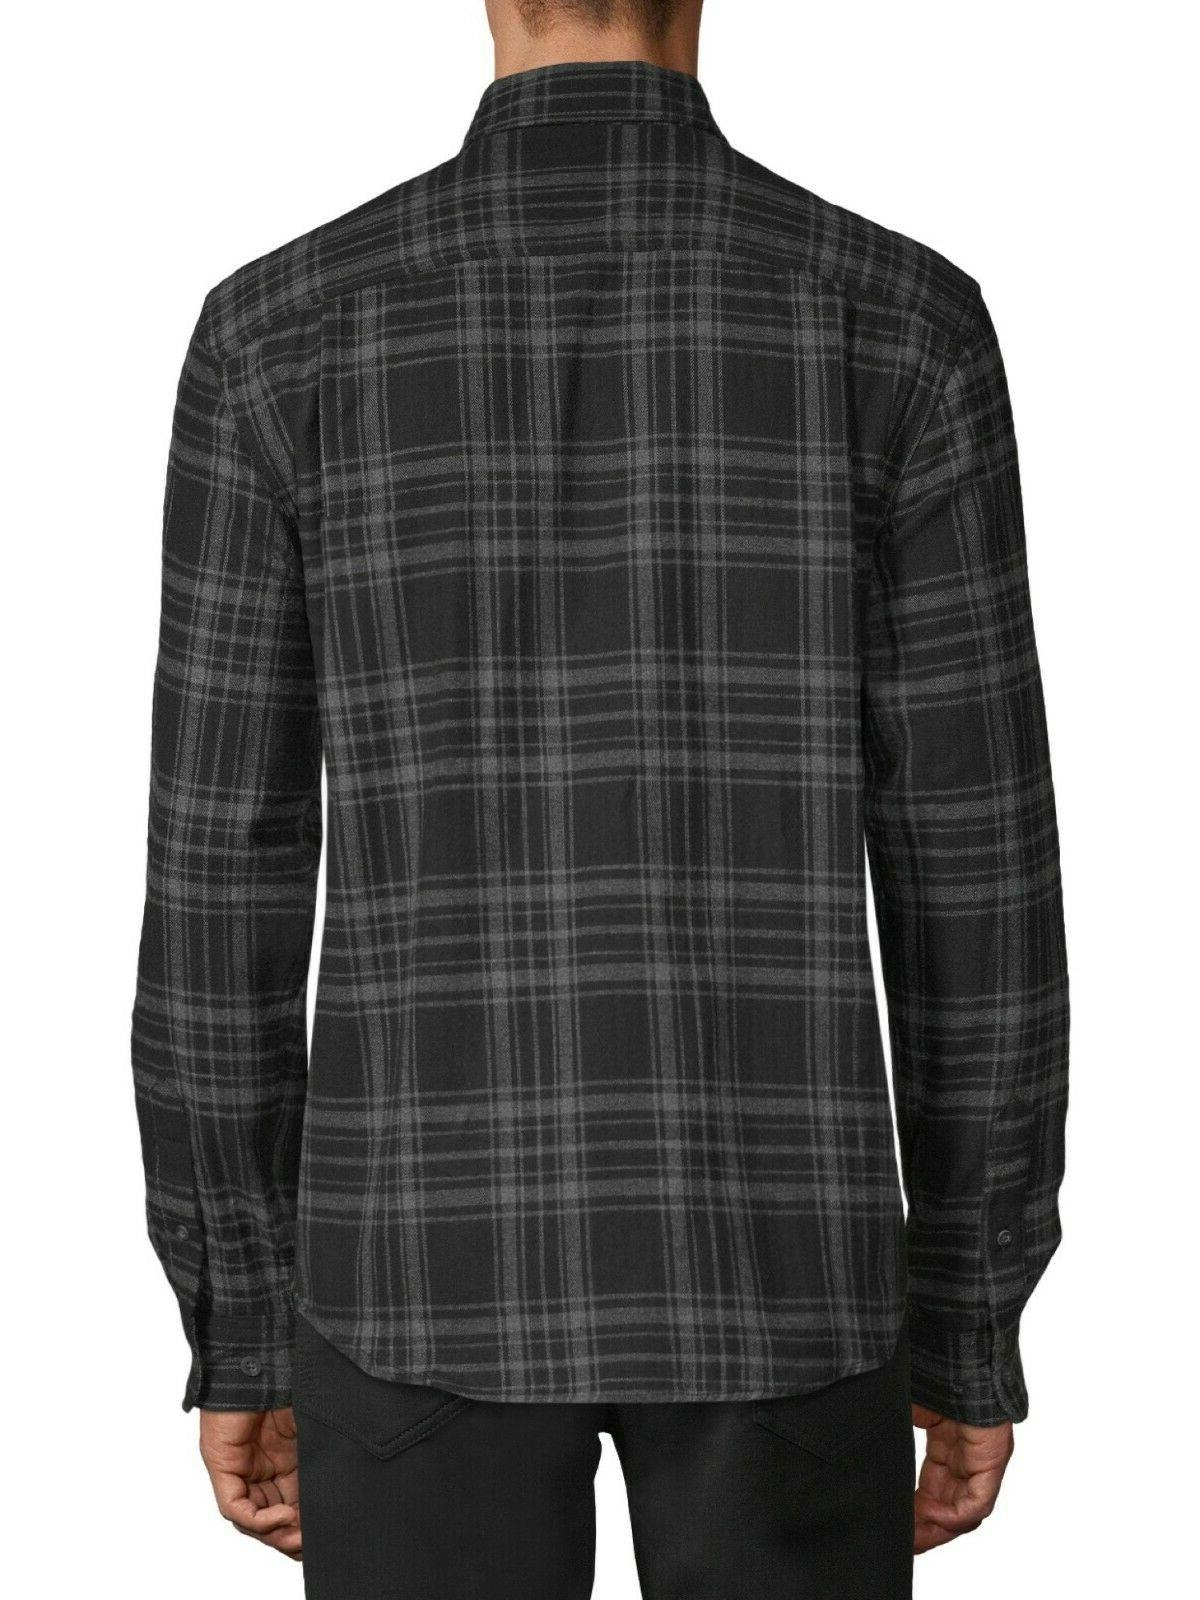 George and Big Men's Long Sleeve Super Soft Shirt, up to size